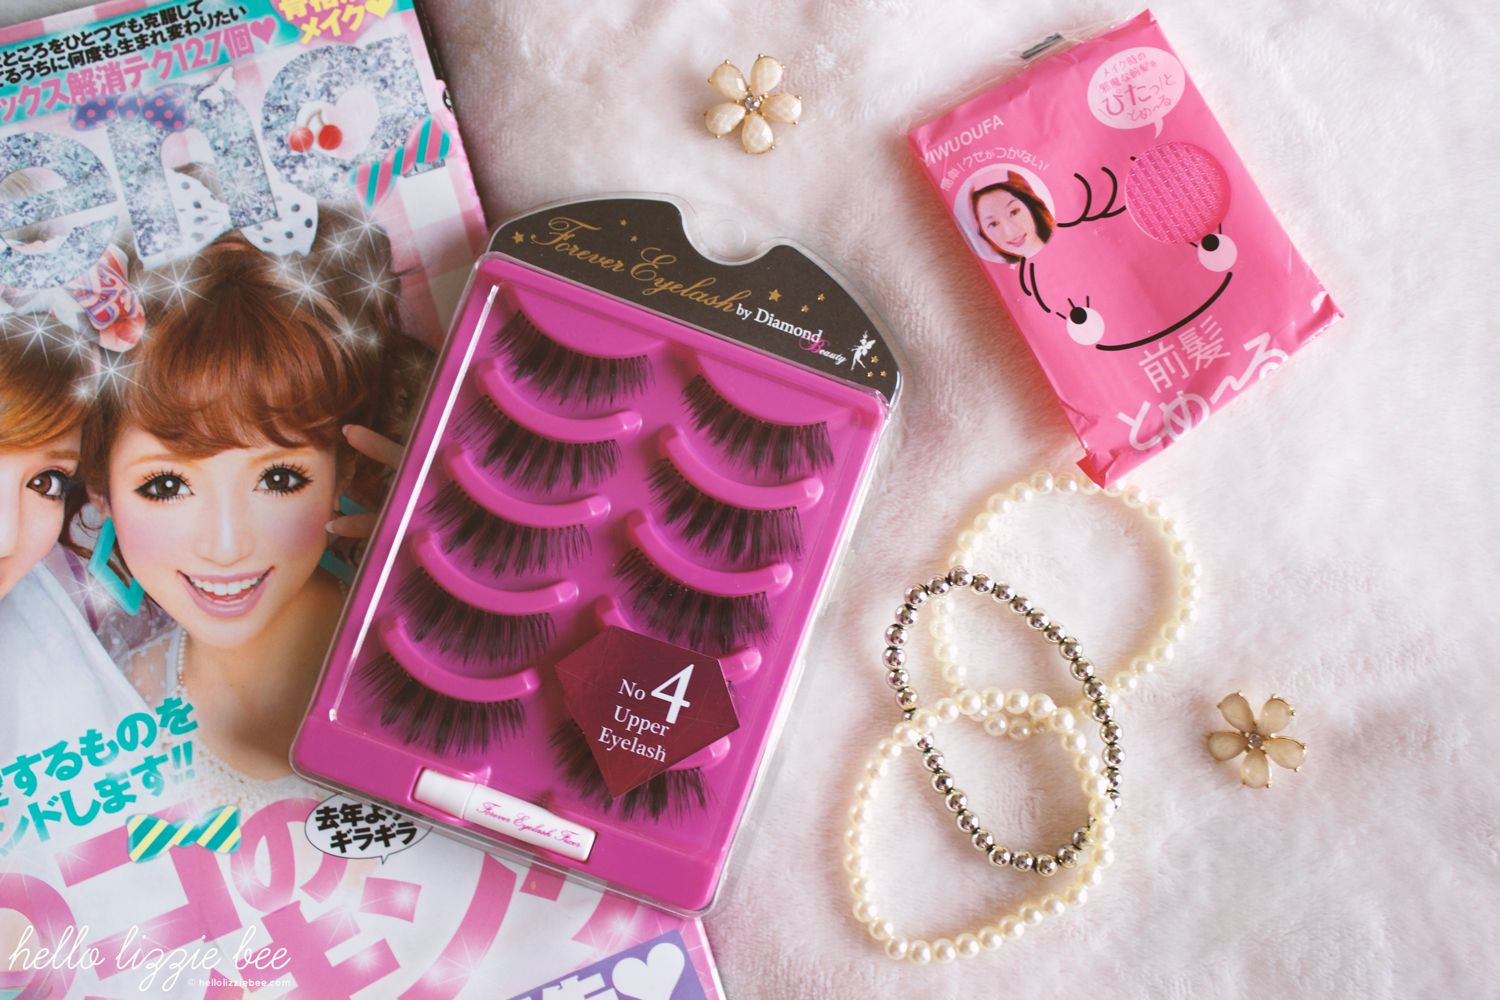 diamond lash, gyaru, eye makeup, false lashes